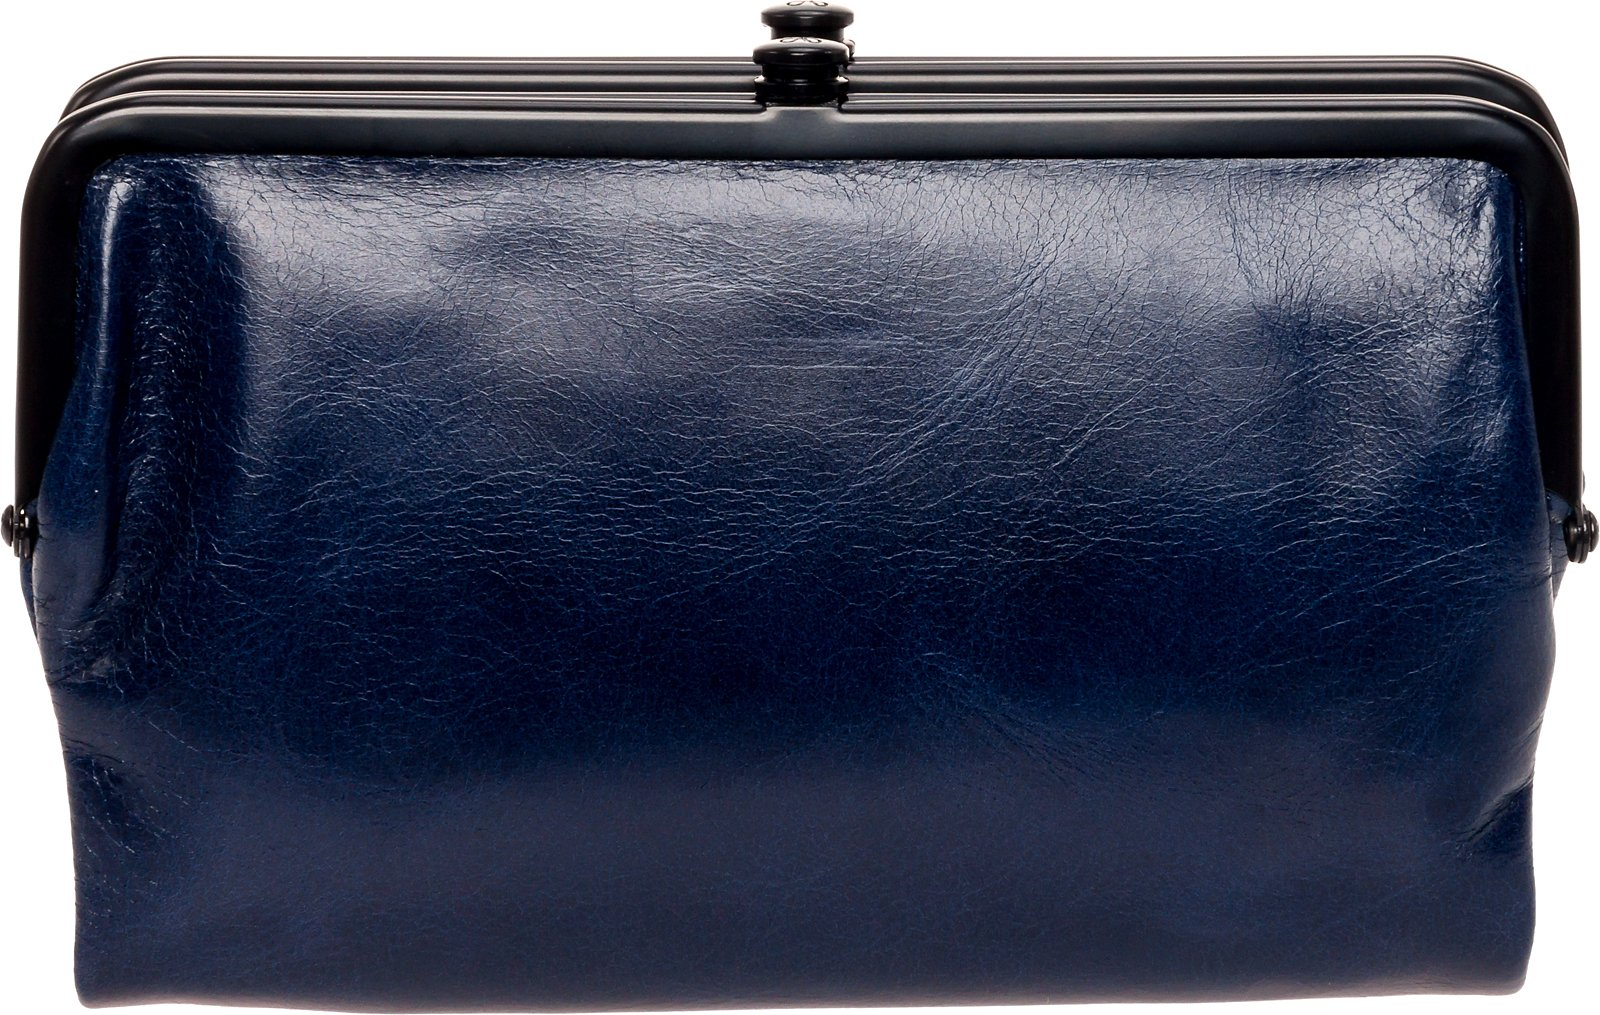 Hobo Womens Glory Vintage Leather Clutch Wallet (Indigo)